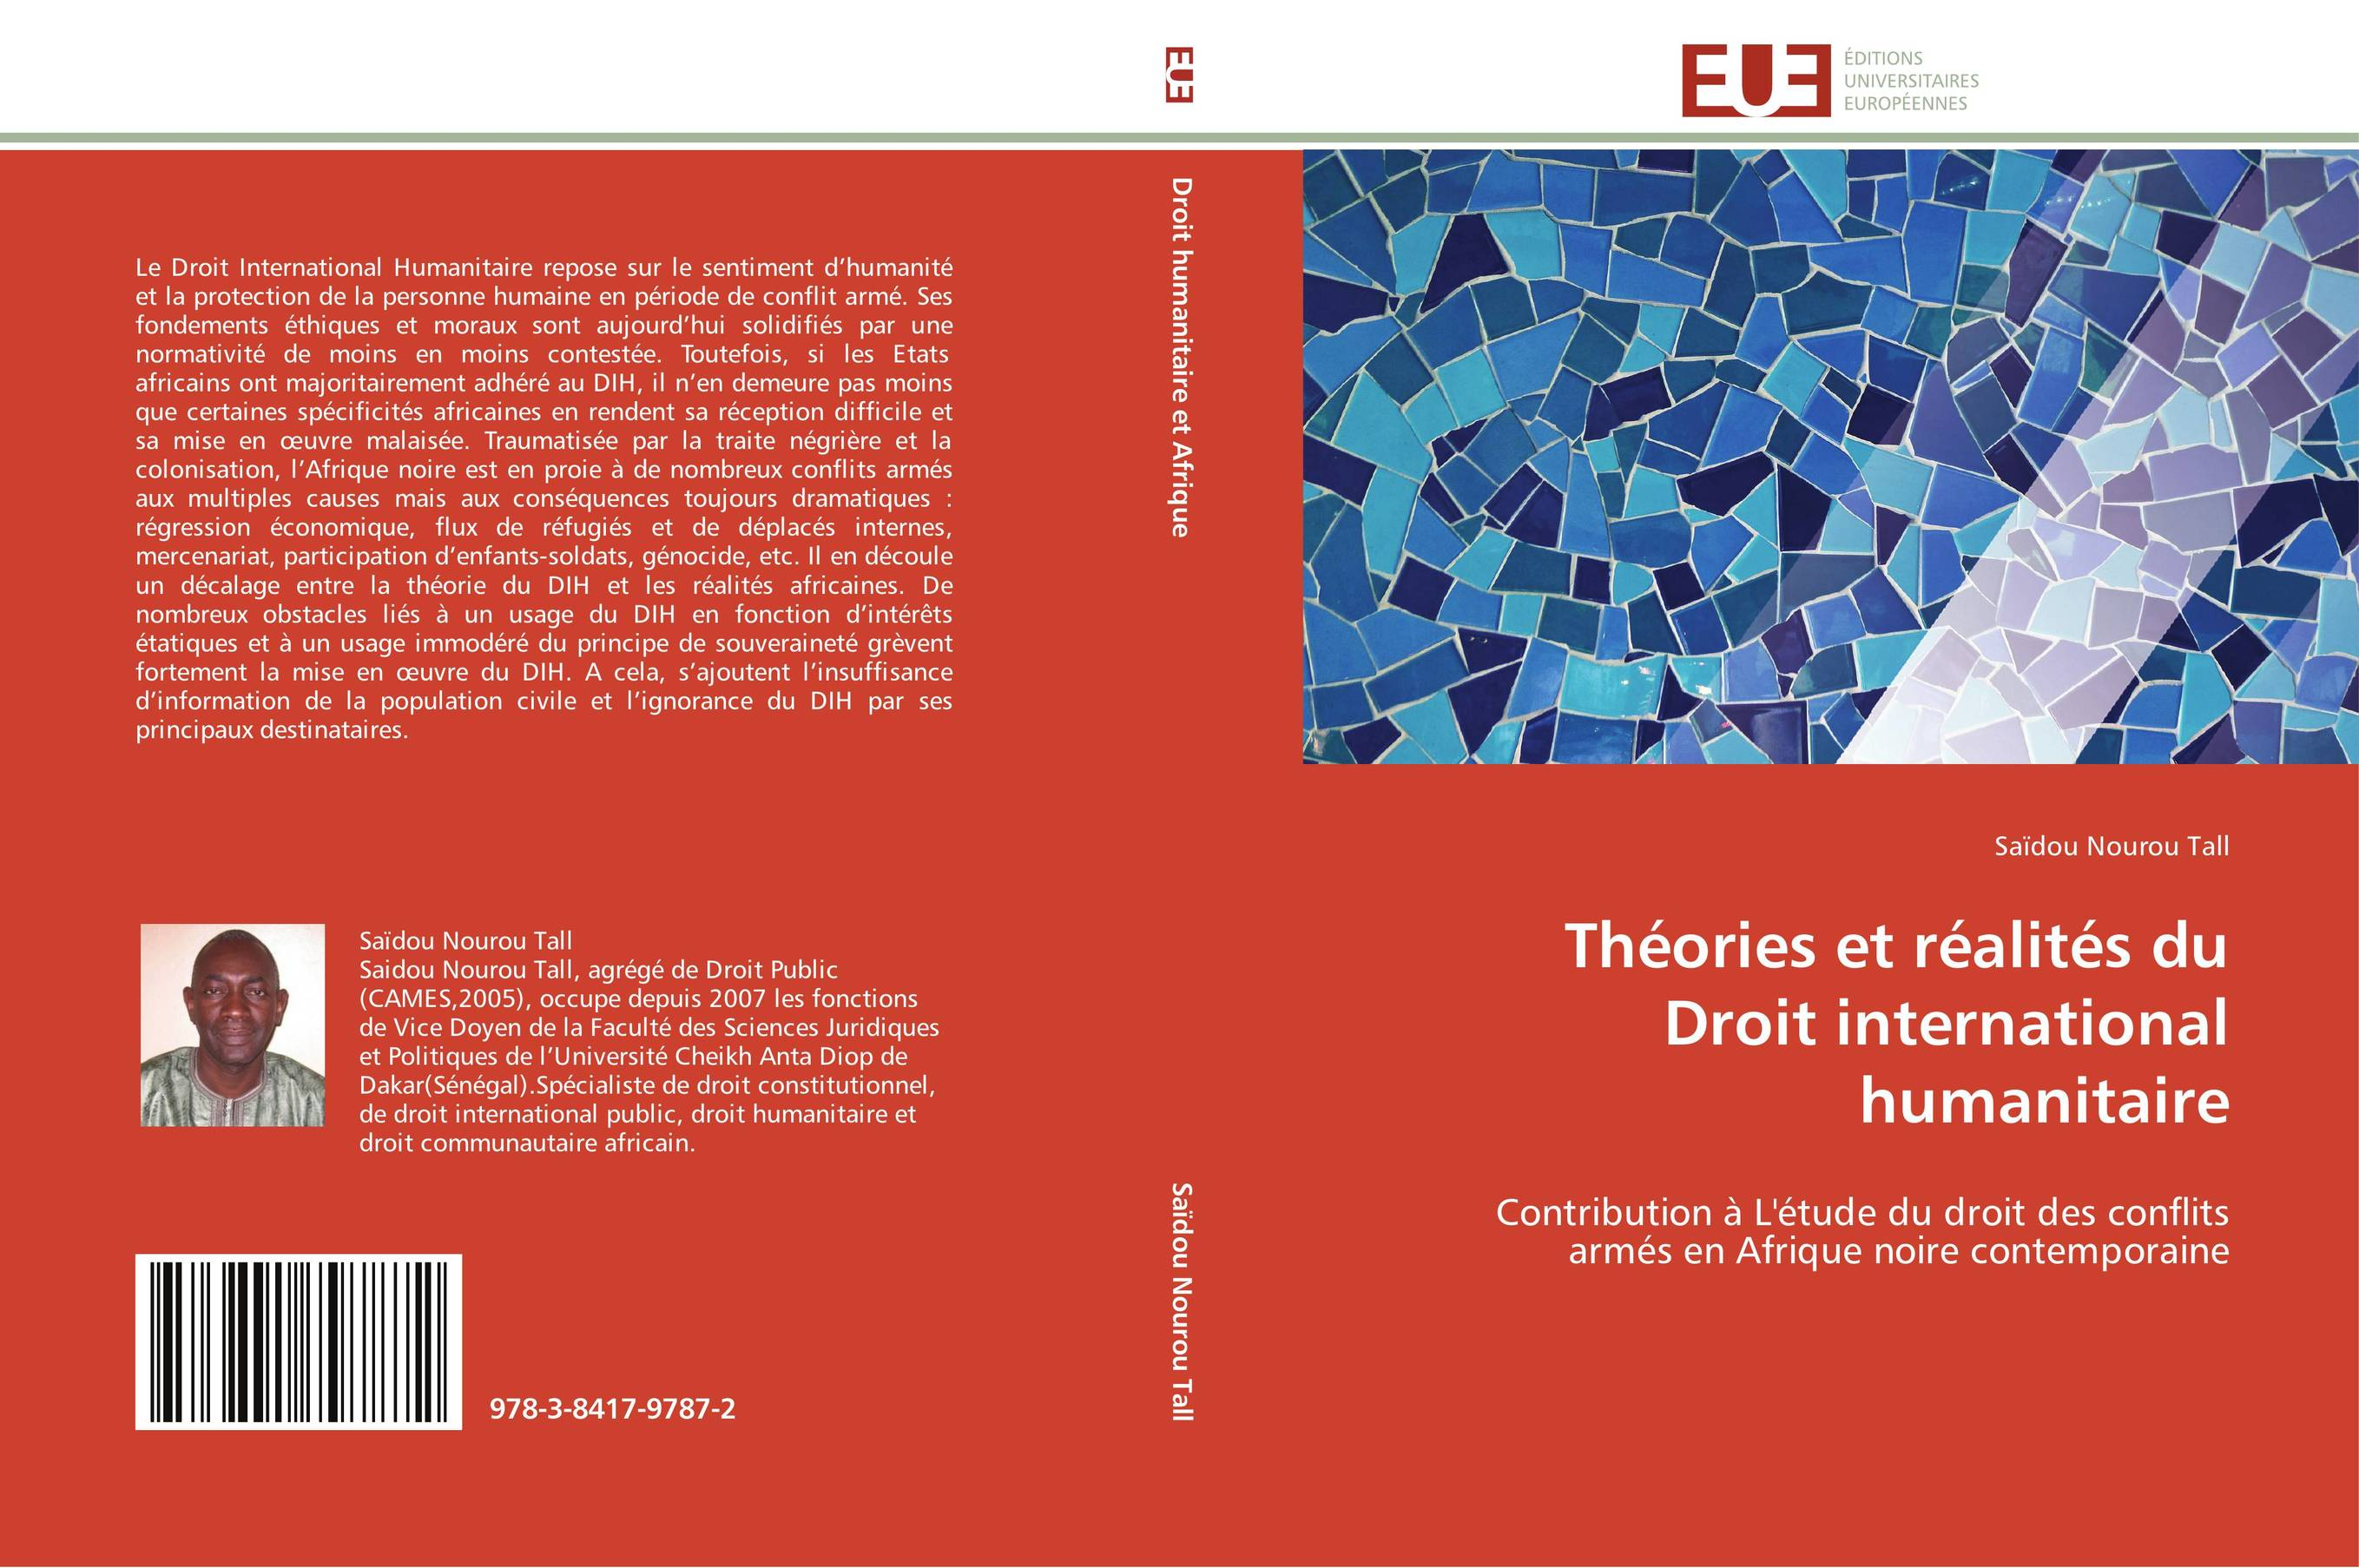 9783841797872-Theories-et-realites-du-Droit-international-humanitaire-Saidou-N